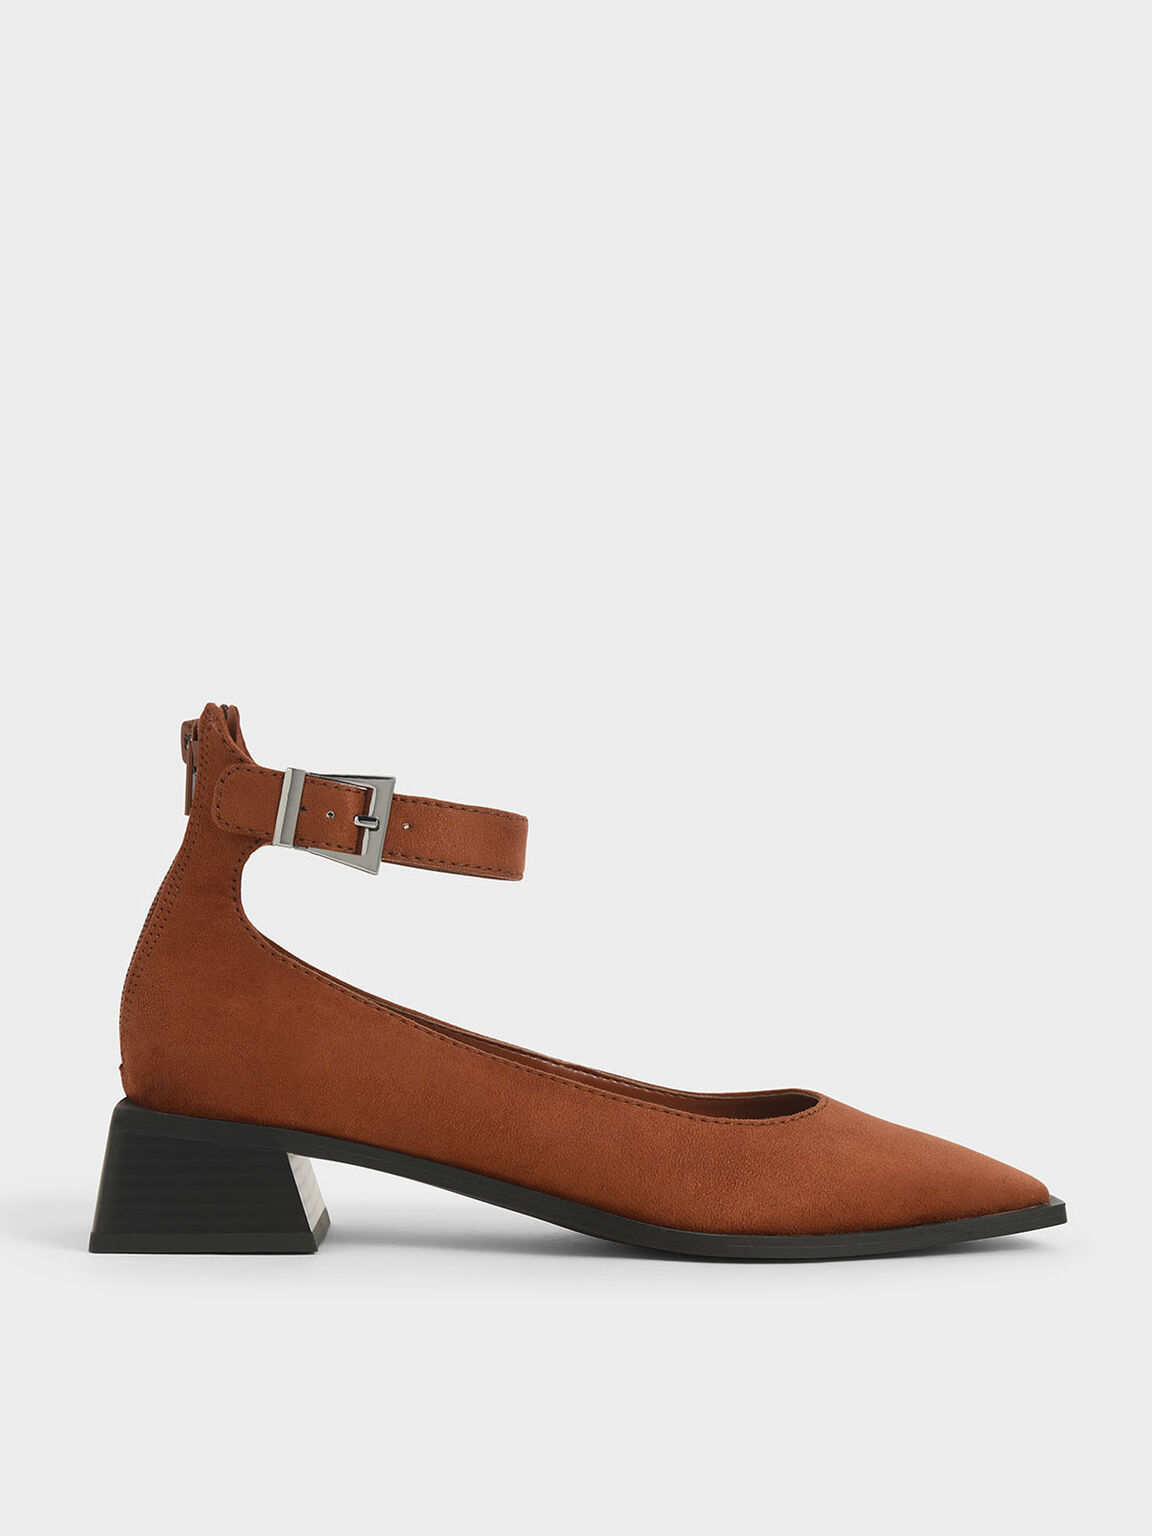 Textured Ankle Strap Square Toe Pumps, Brick, hi-res